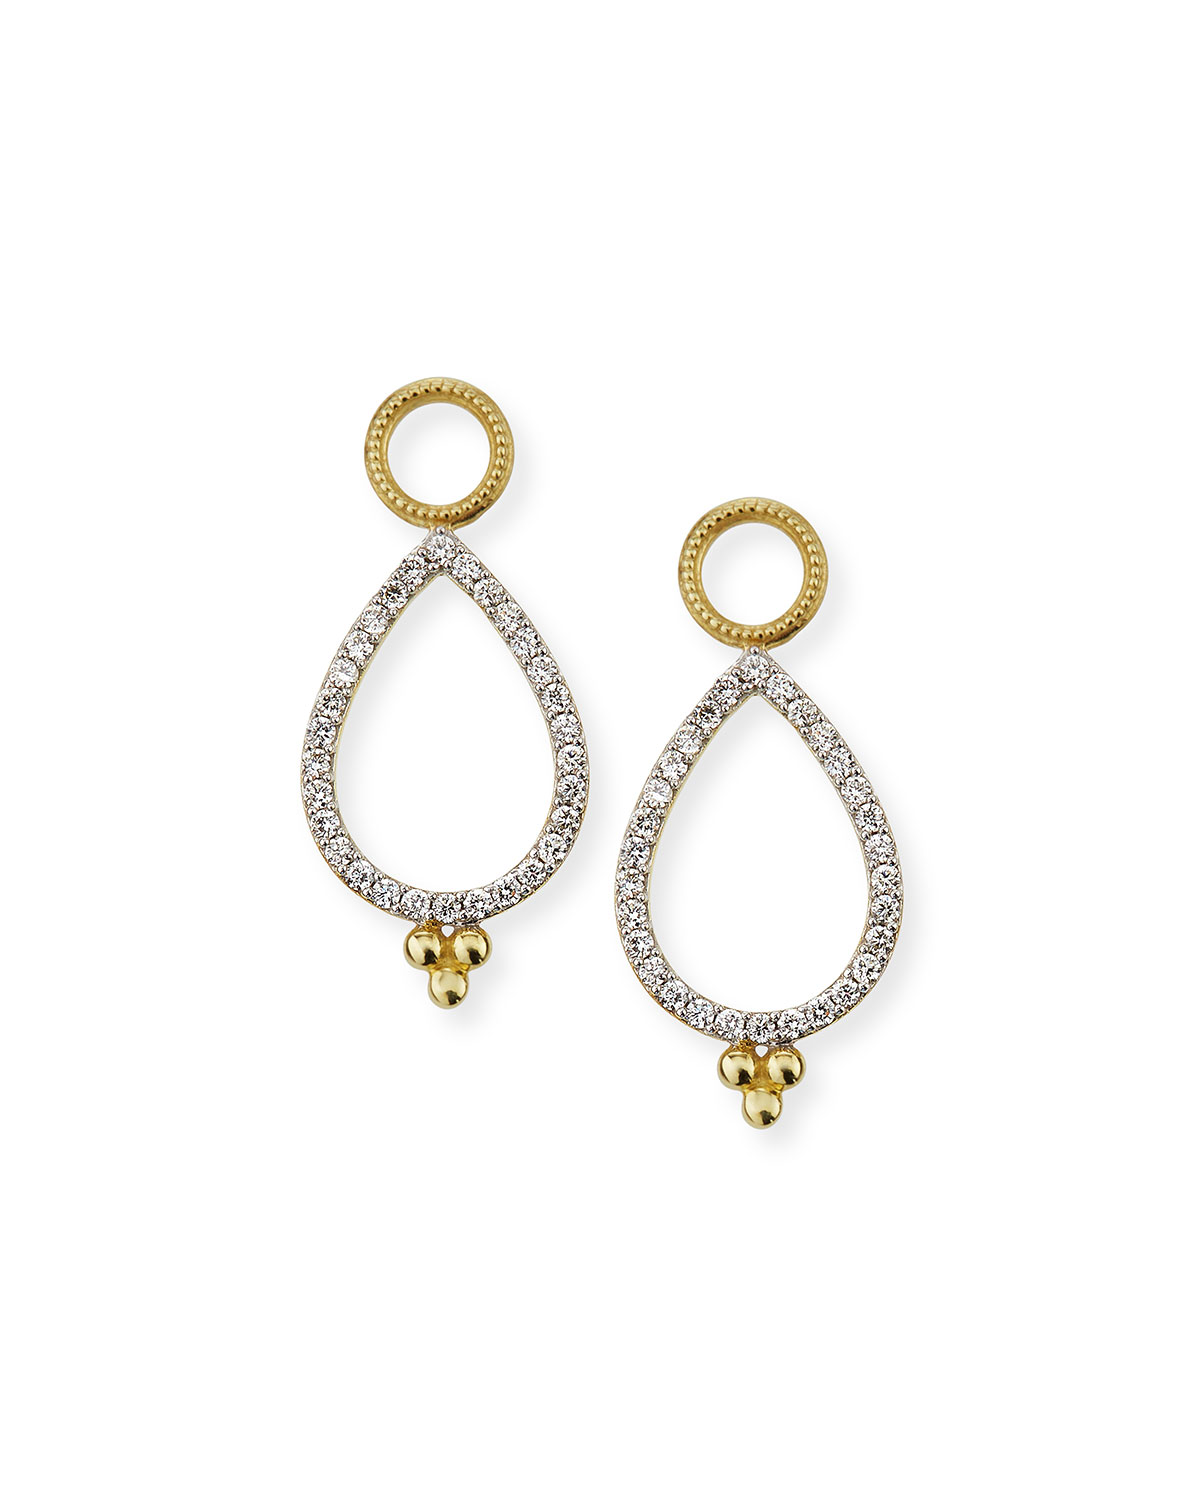 Provence 18k Delicate Open Pear Pave Earring Charms